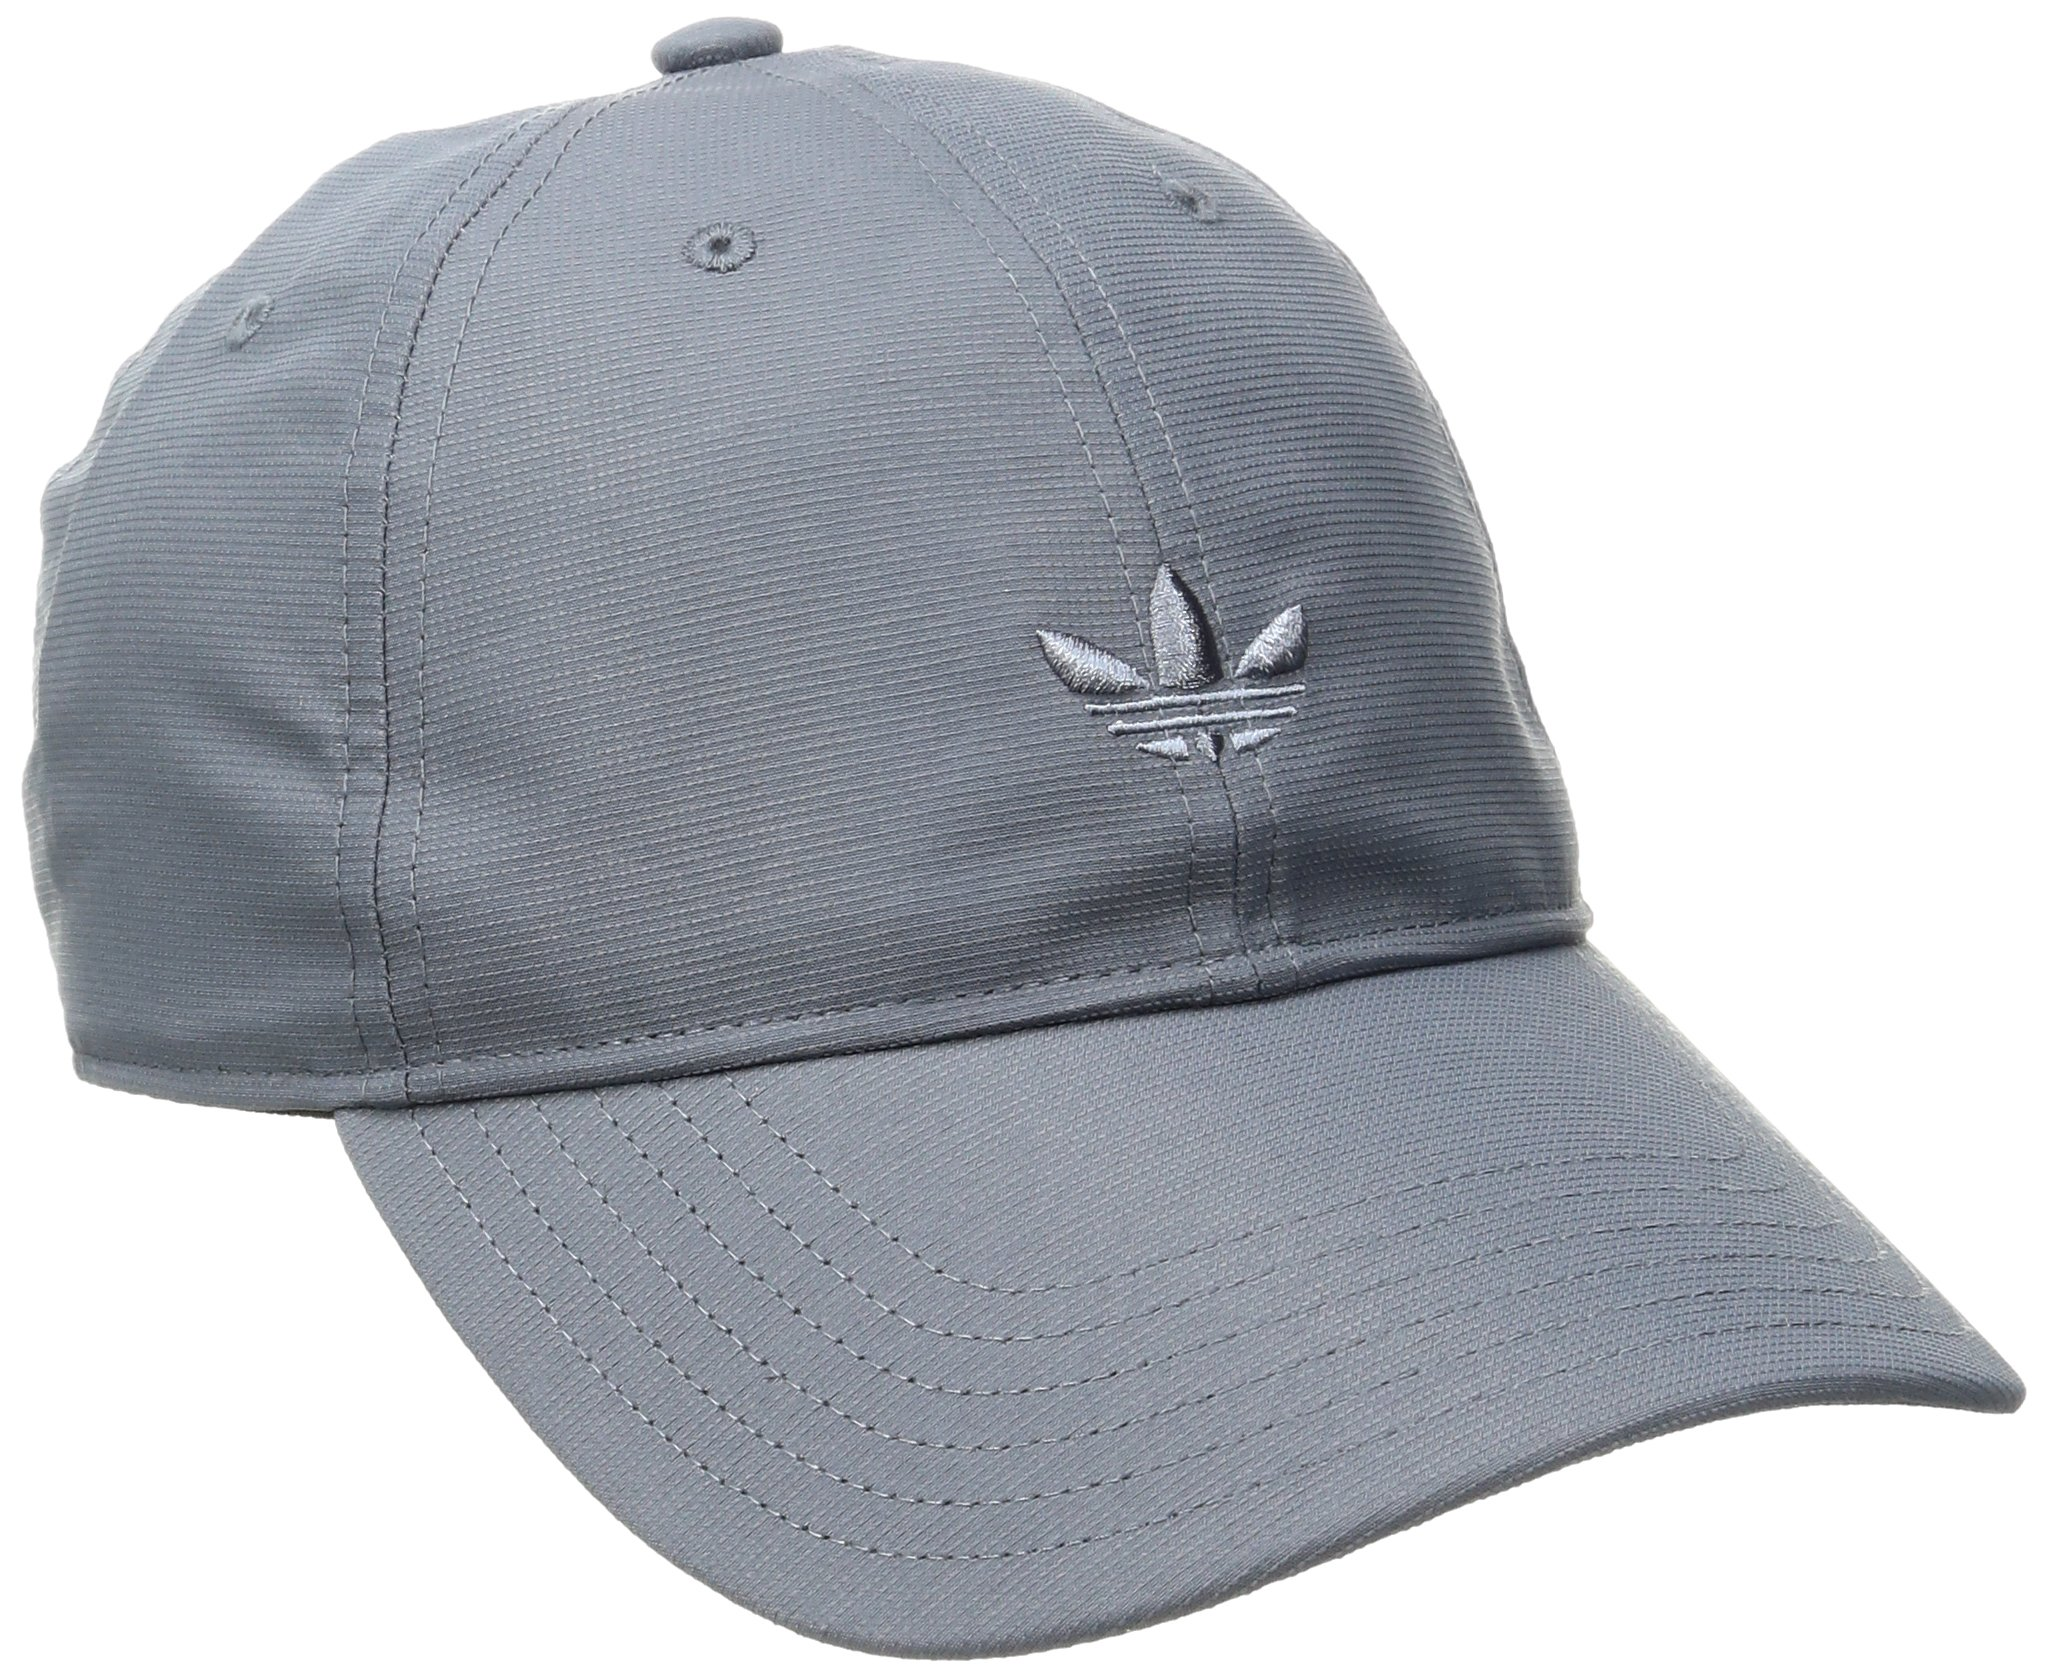 adidas Men's Originals Relaxed Strap Back Cap, One Size, Grey